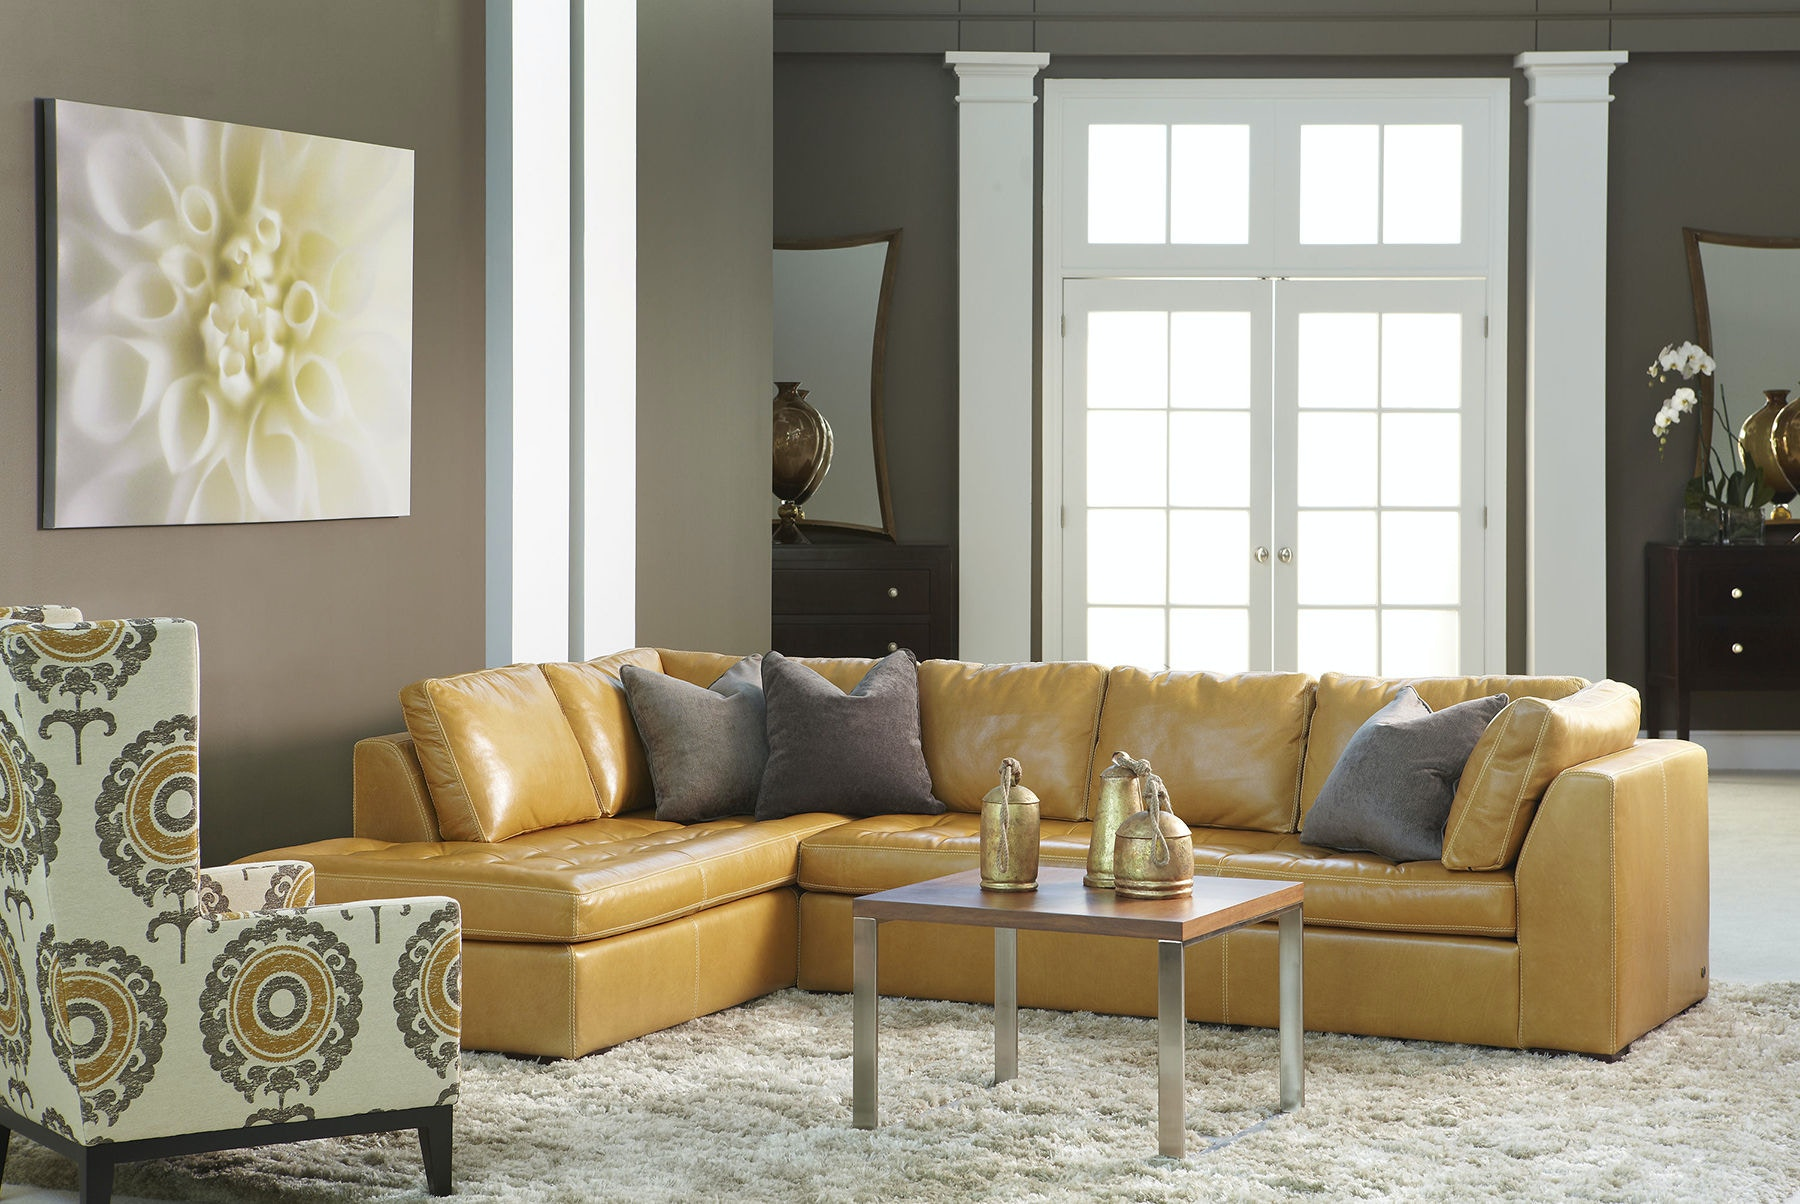 American Leather Astoria Sectional ARI SECT2